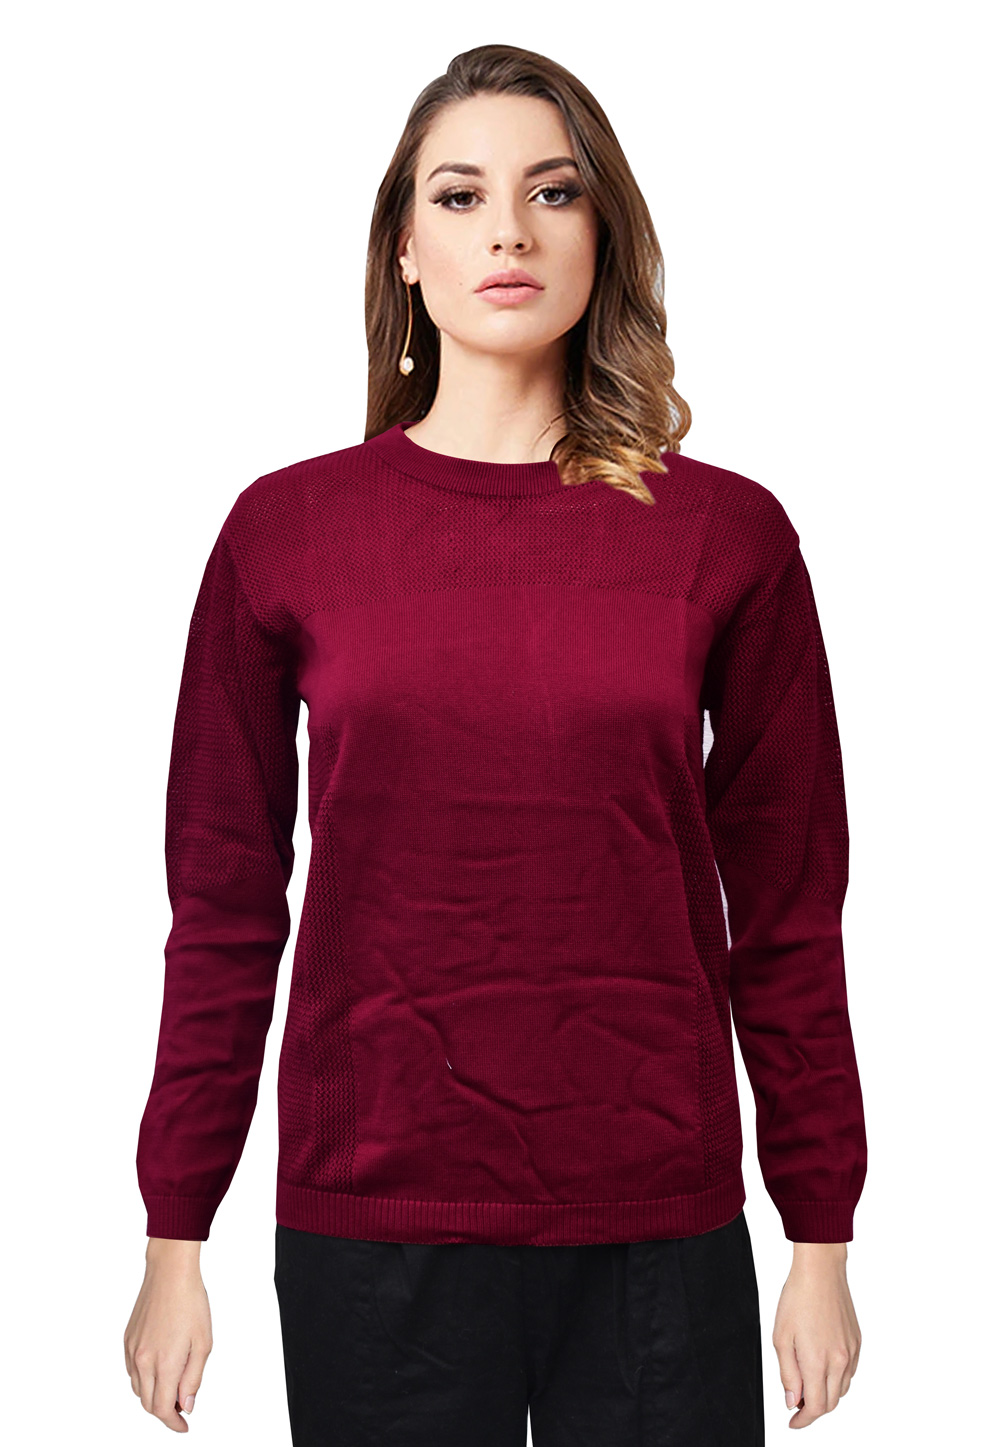 Wine Knitted Sweater Tops 214239